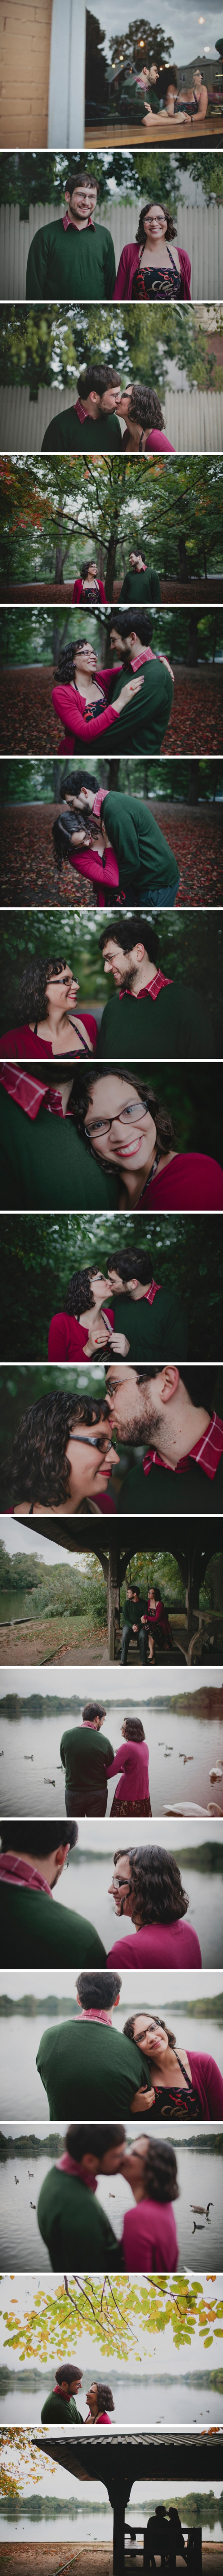 Donielle & Nate: Engaged in Brooklyn